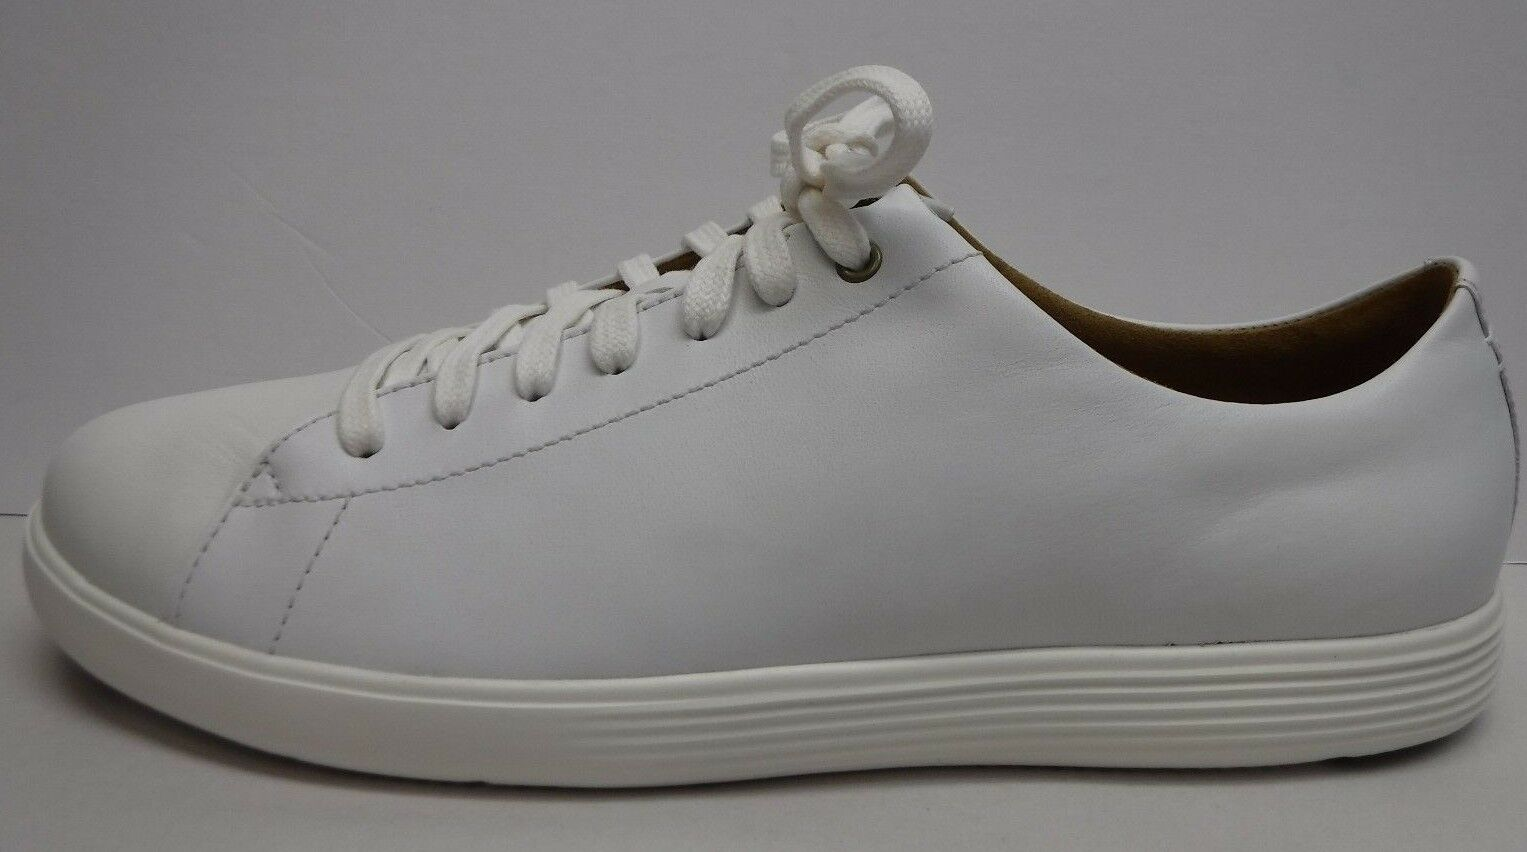 Cole Cole Cole Haan Grand .OS Größe 10 Weiß Leder Sneakers New Damenschuhe Schuhes fcfe92